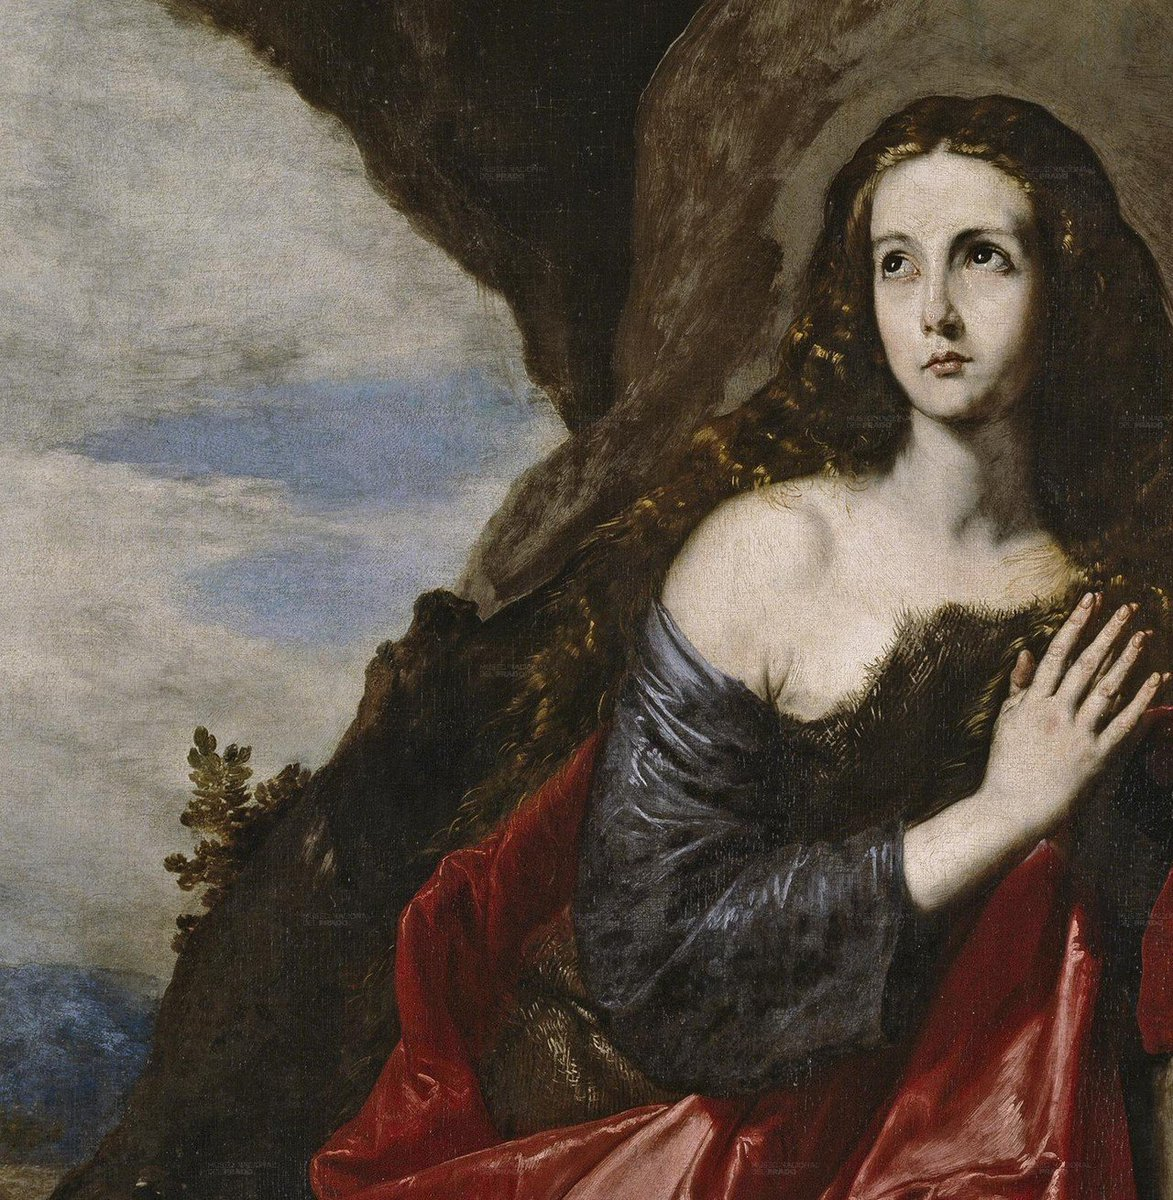 1. Art afternoon  Detail from: &quot;The Magdalene or St. Thais&quot;. Artist: José de Ribera. Style: Baroque. Museum: @museodelprado Country: Spain  Year: 1641. #Special80s #JoseDeRibera #MuseoDelPrado #Madrid #Spain #Art #Baroque #FelizSábado #15D #15Decembre #15Diciembre #FelizFinde <br>http://pic.twitter.com/aDuPgOvcO0